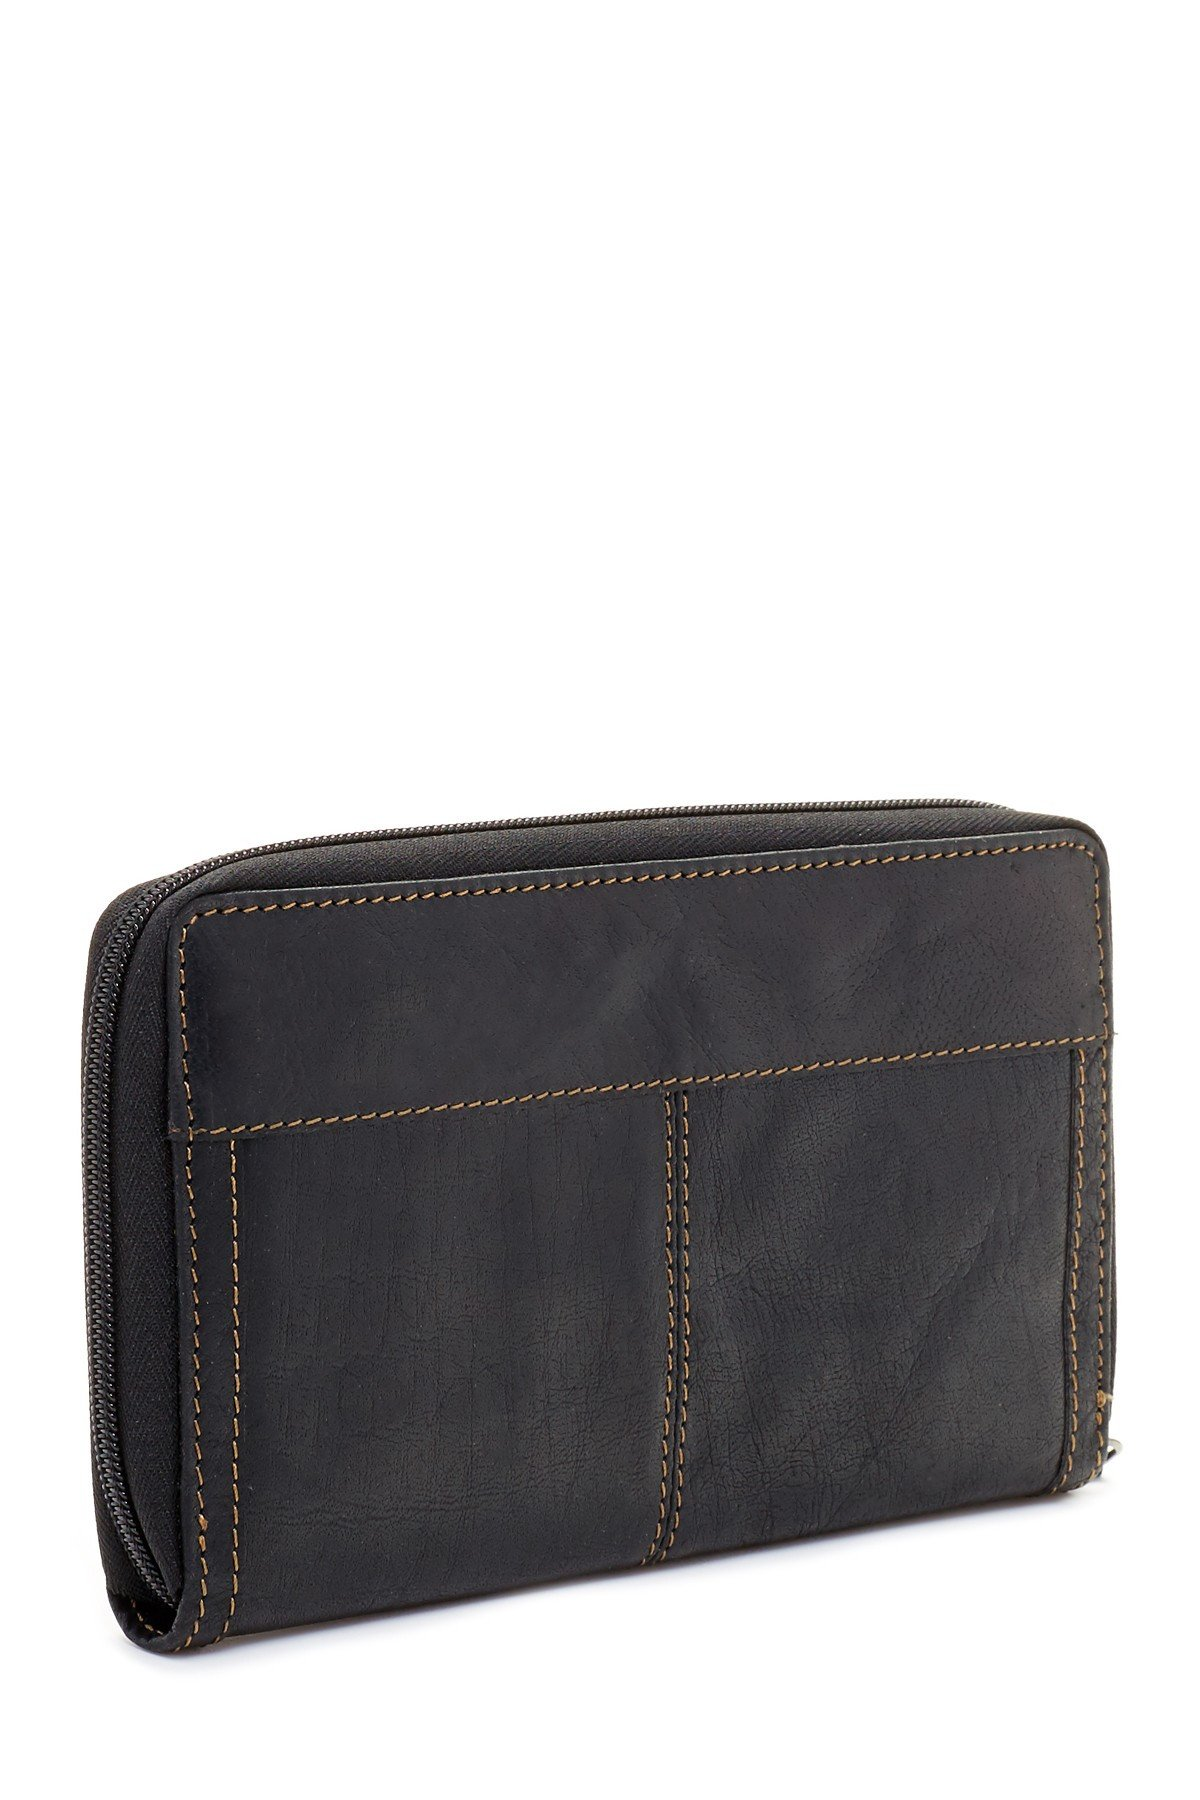 Jack Georges Voyager Large Zip-Around Leather Travel Wallet in Black